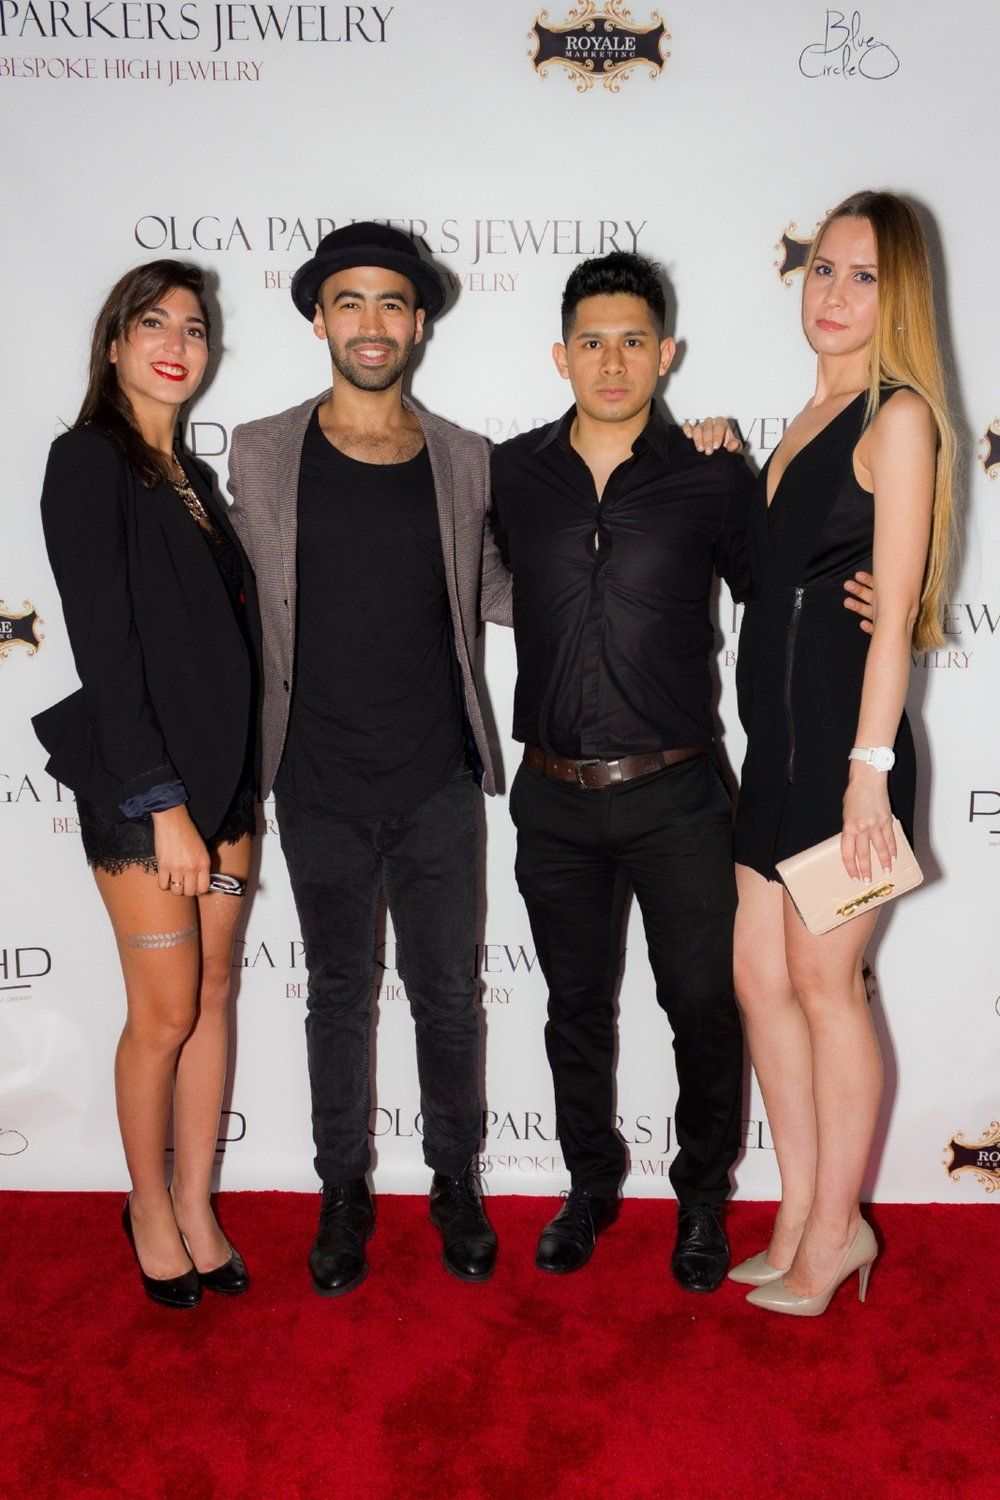 Sophie Khoury, Arnaldo Franco, Walter Taffur & Anastasia Step at OLGA PARKERS JEWELRY launch at PHD ROOFTOP DREAM Hotel